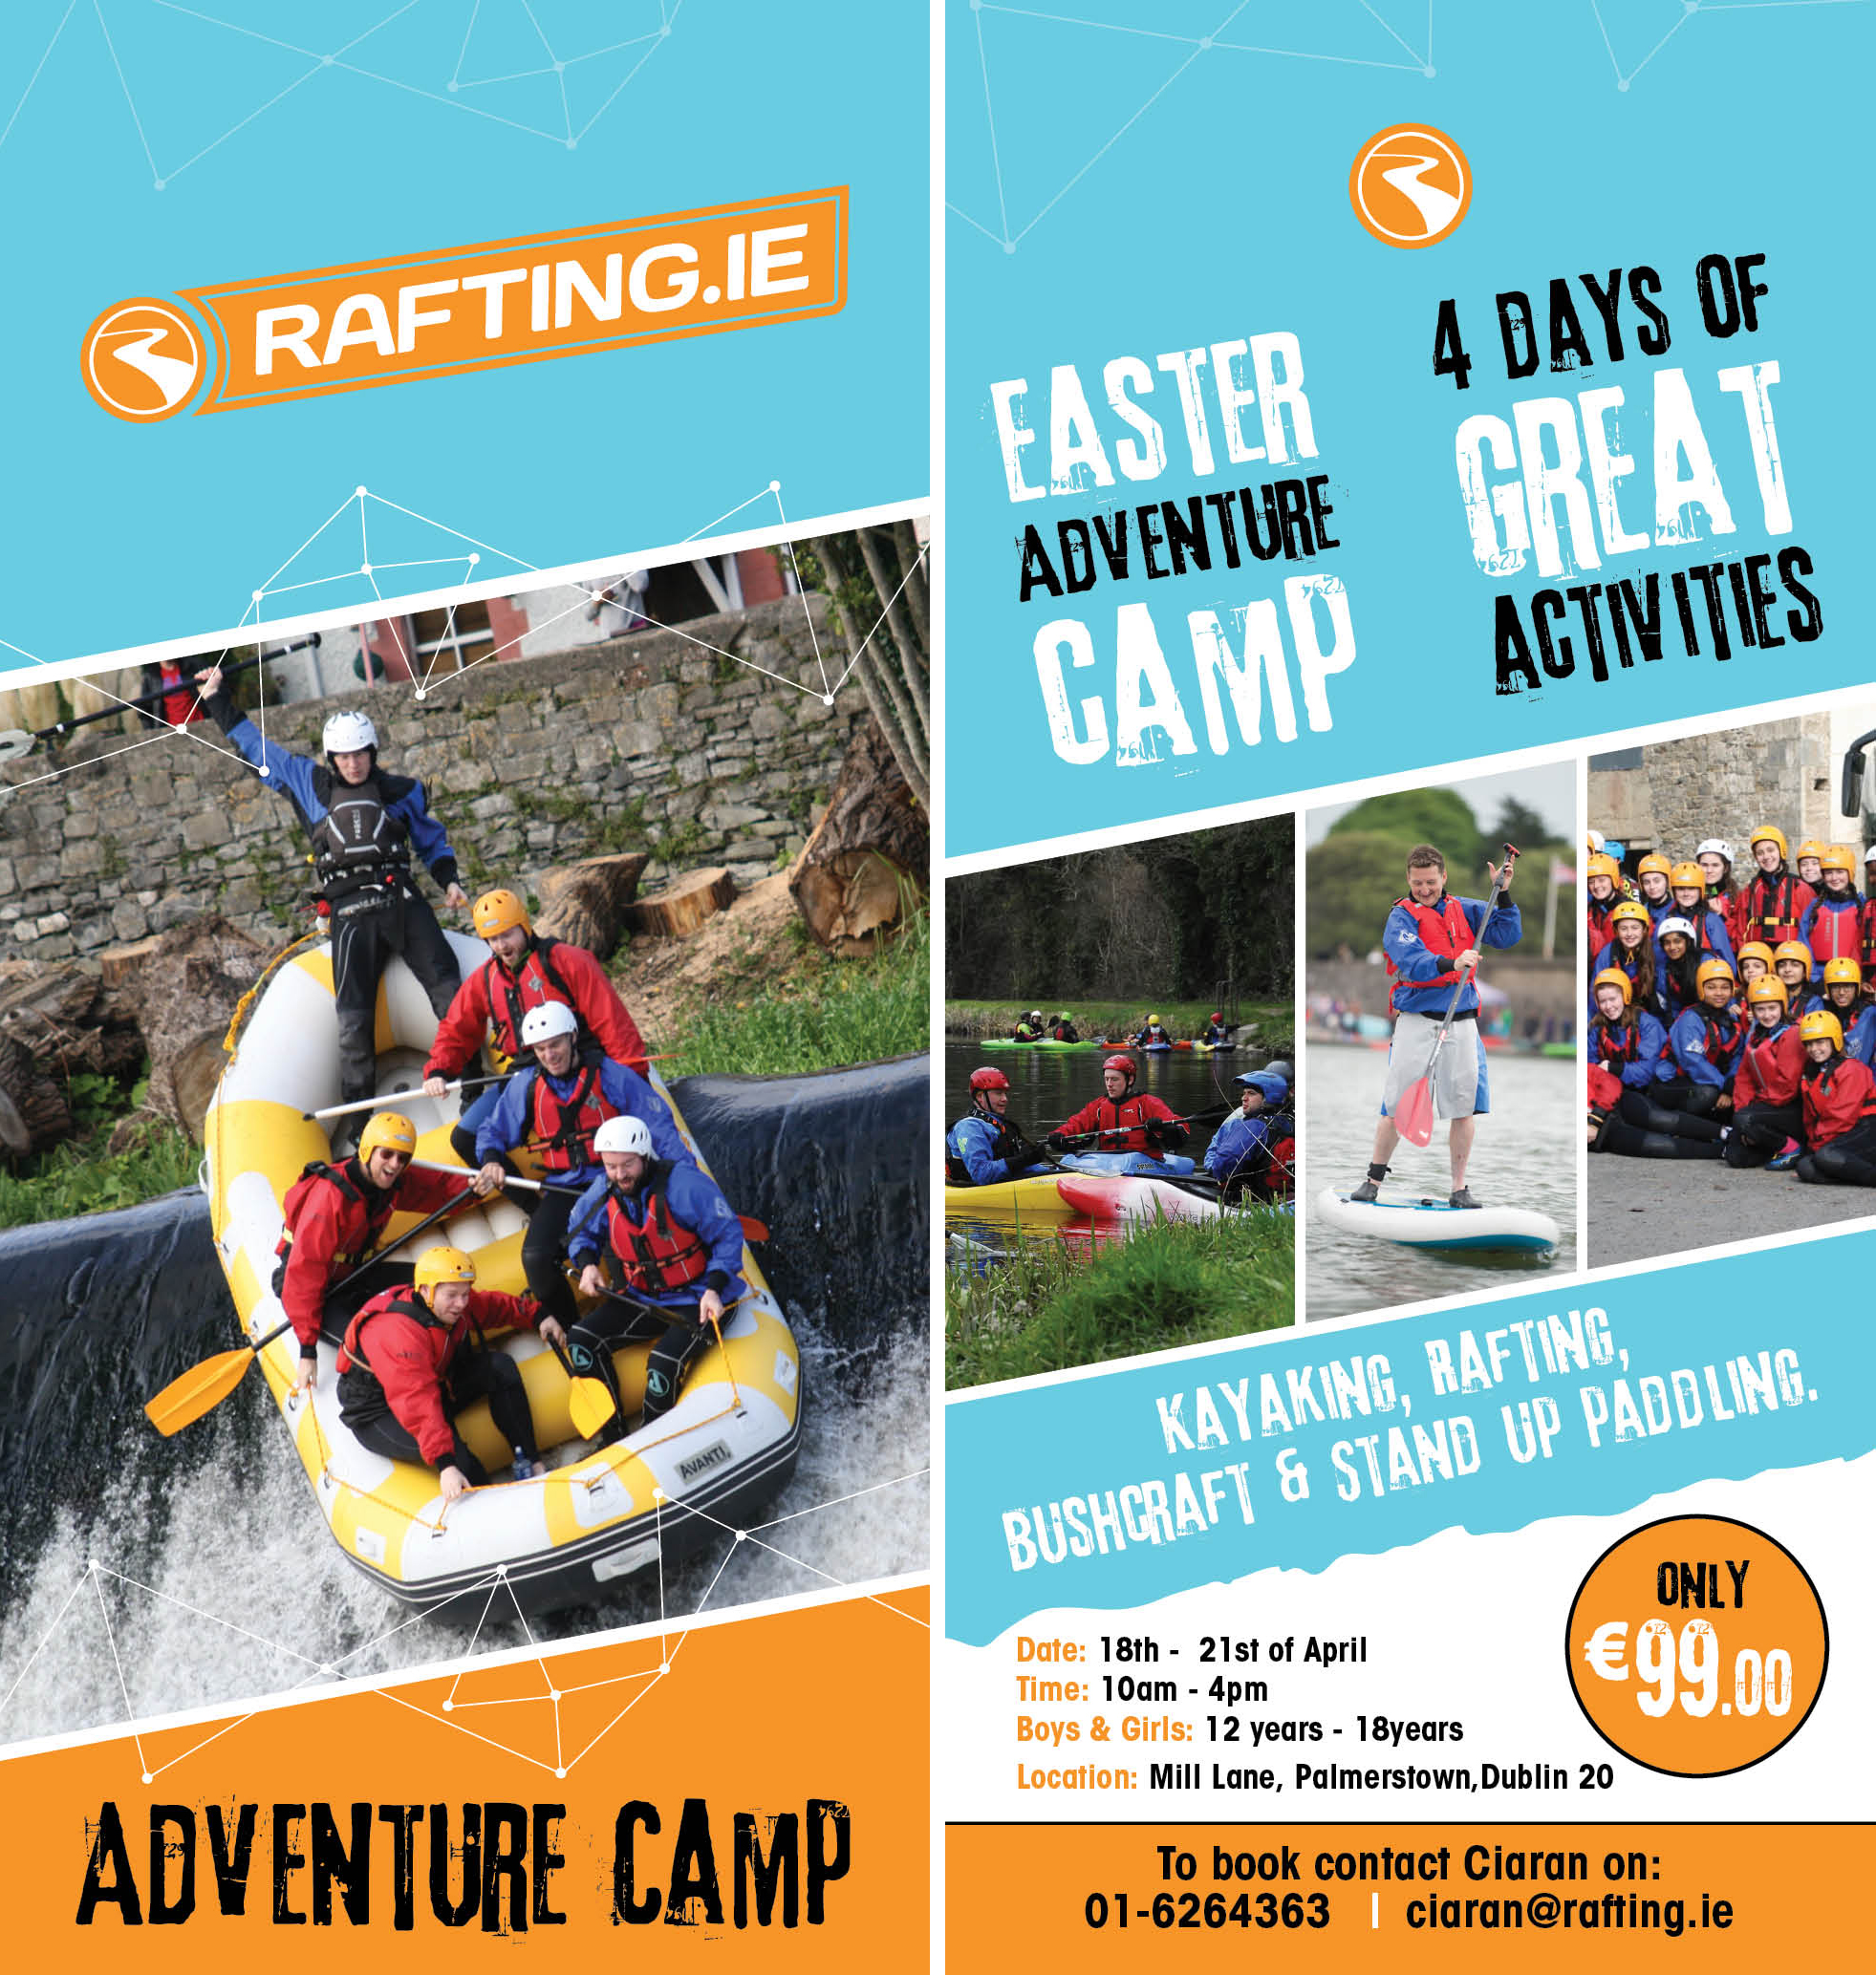 rafting.ie Easter Camp